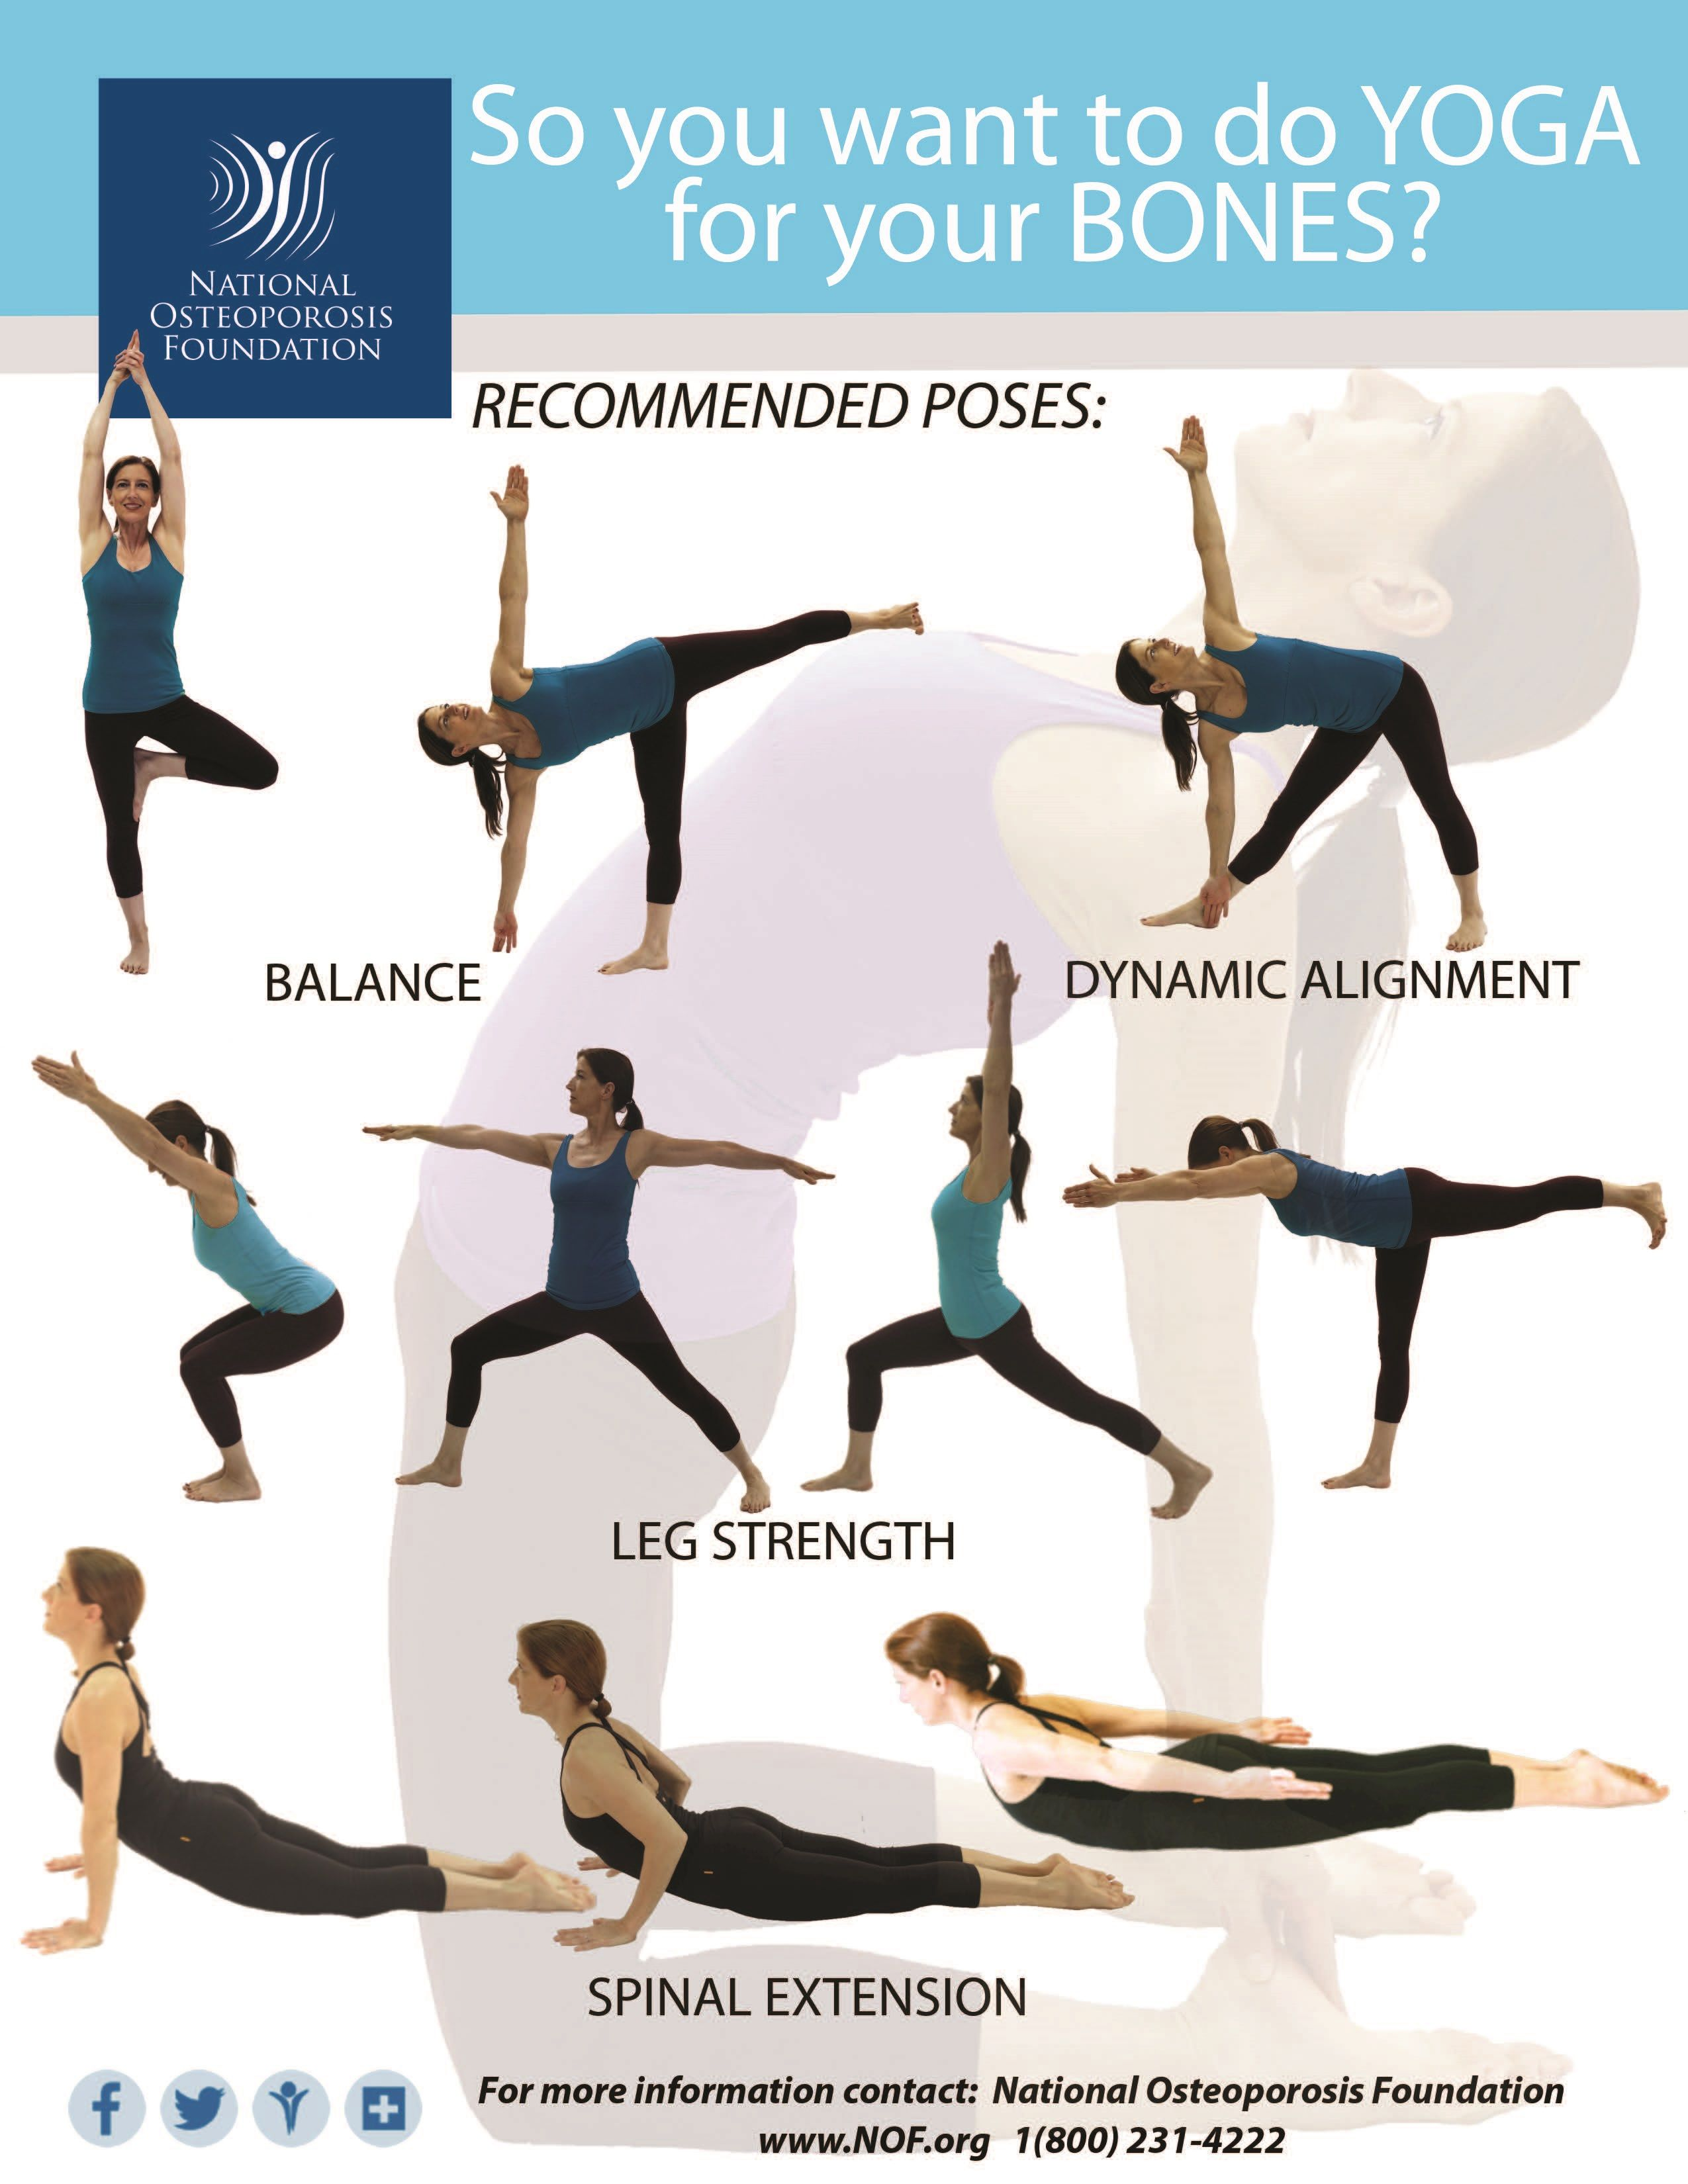 The National Osteoporosis Foundation Wants To Keep You Moving Even With Osteoporosis With Safe Yoga Yoga Postures Best Yoga How To Do Yoga